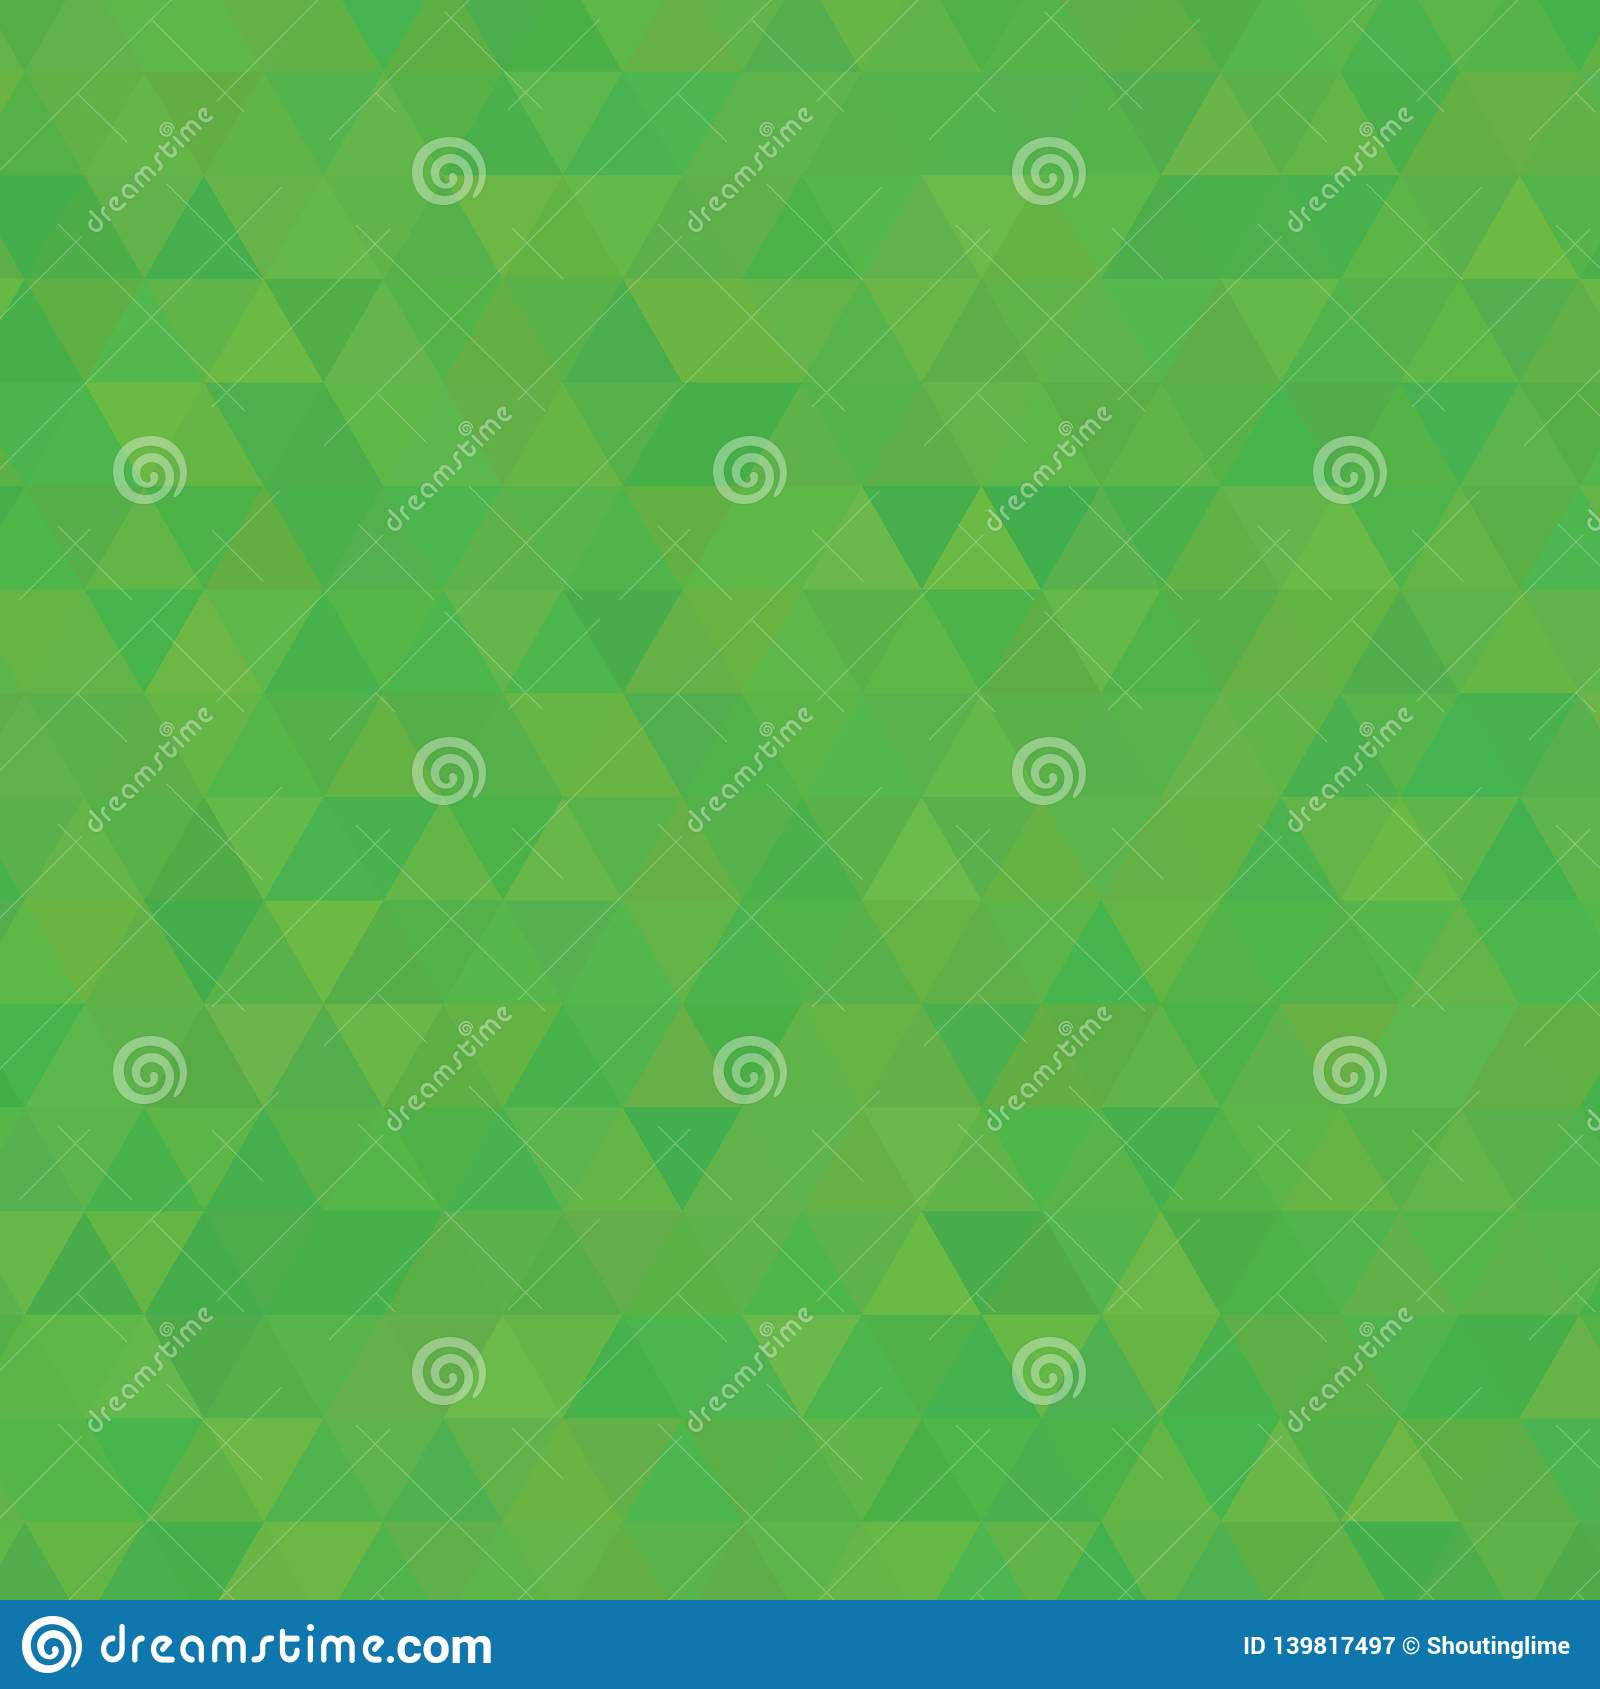 Salad Green Shades Background Square of Triangles